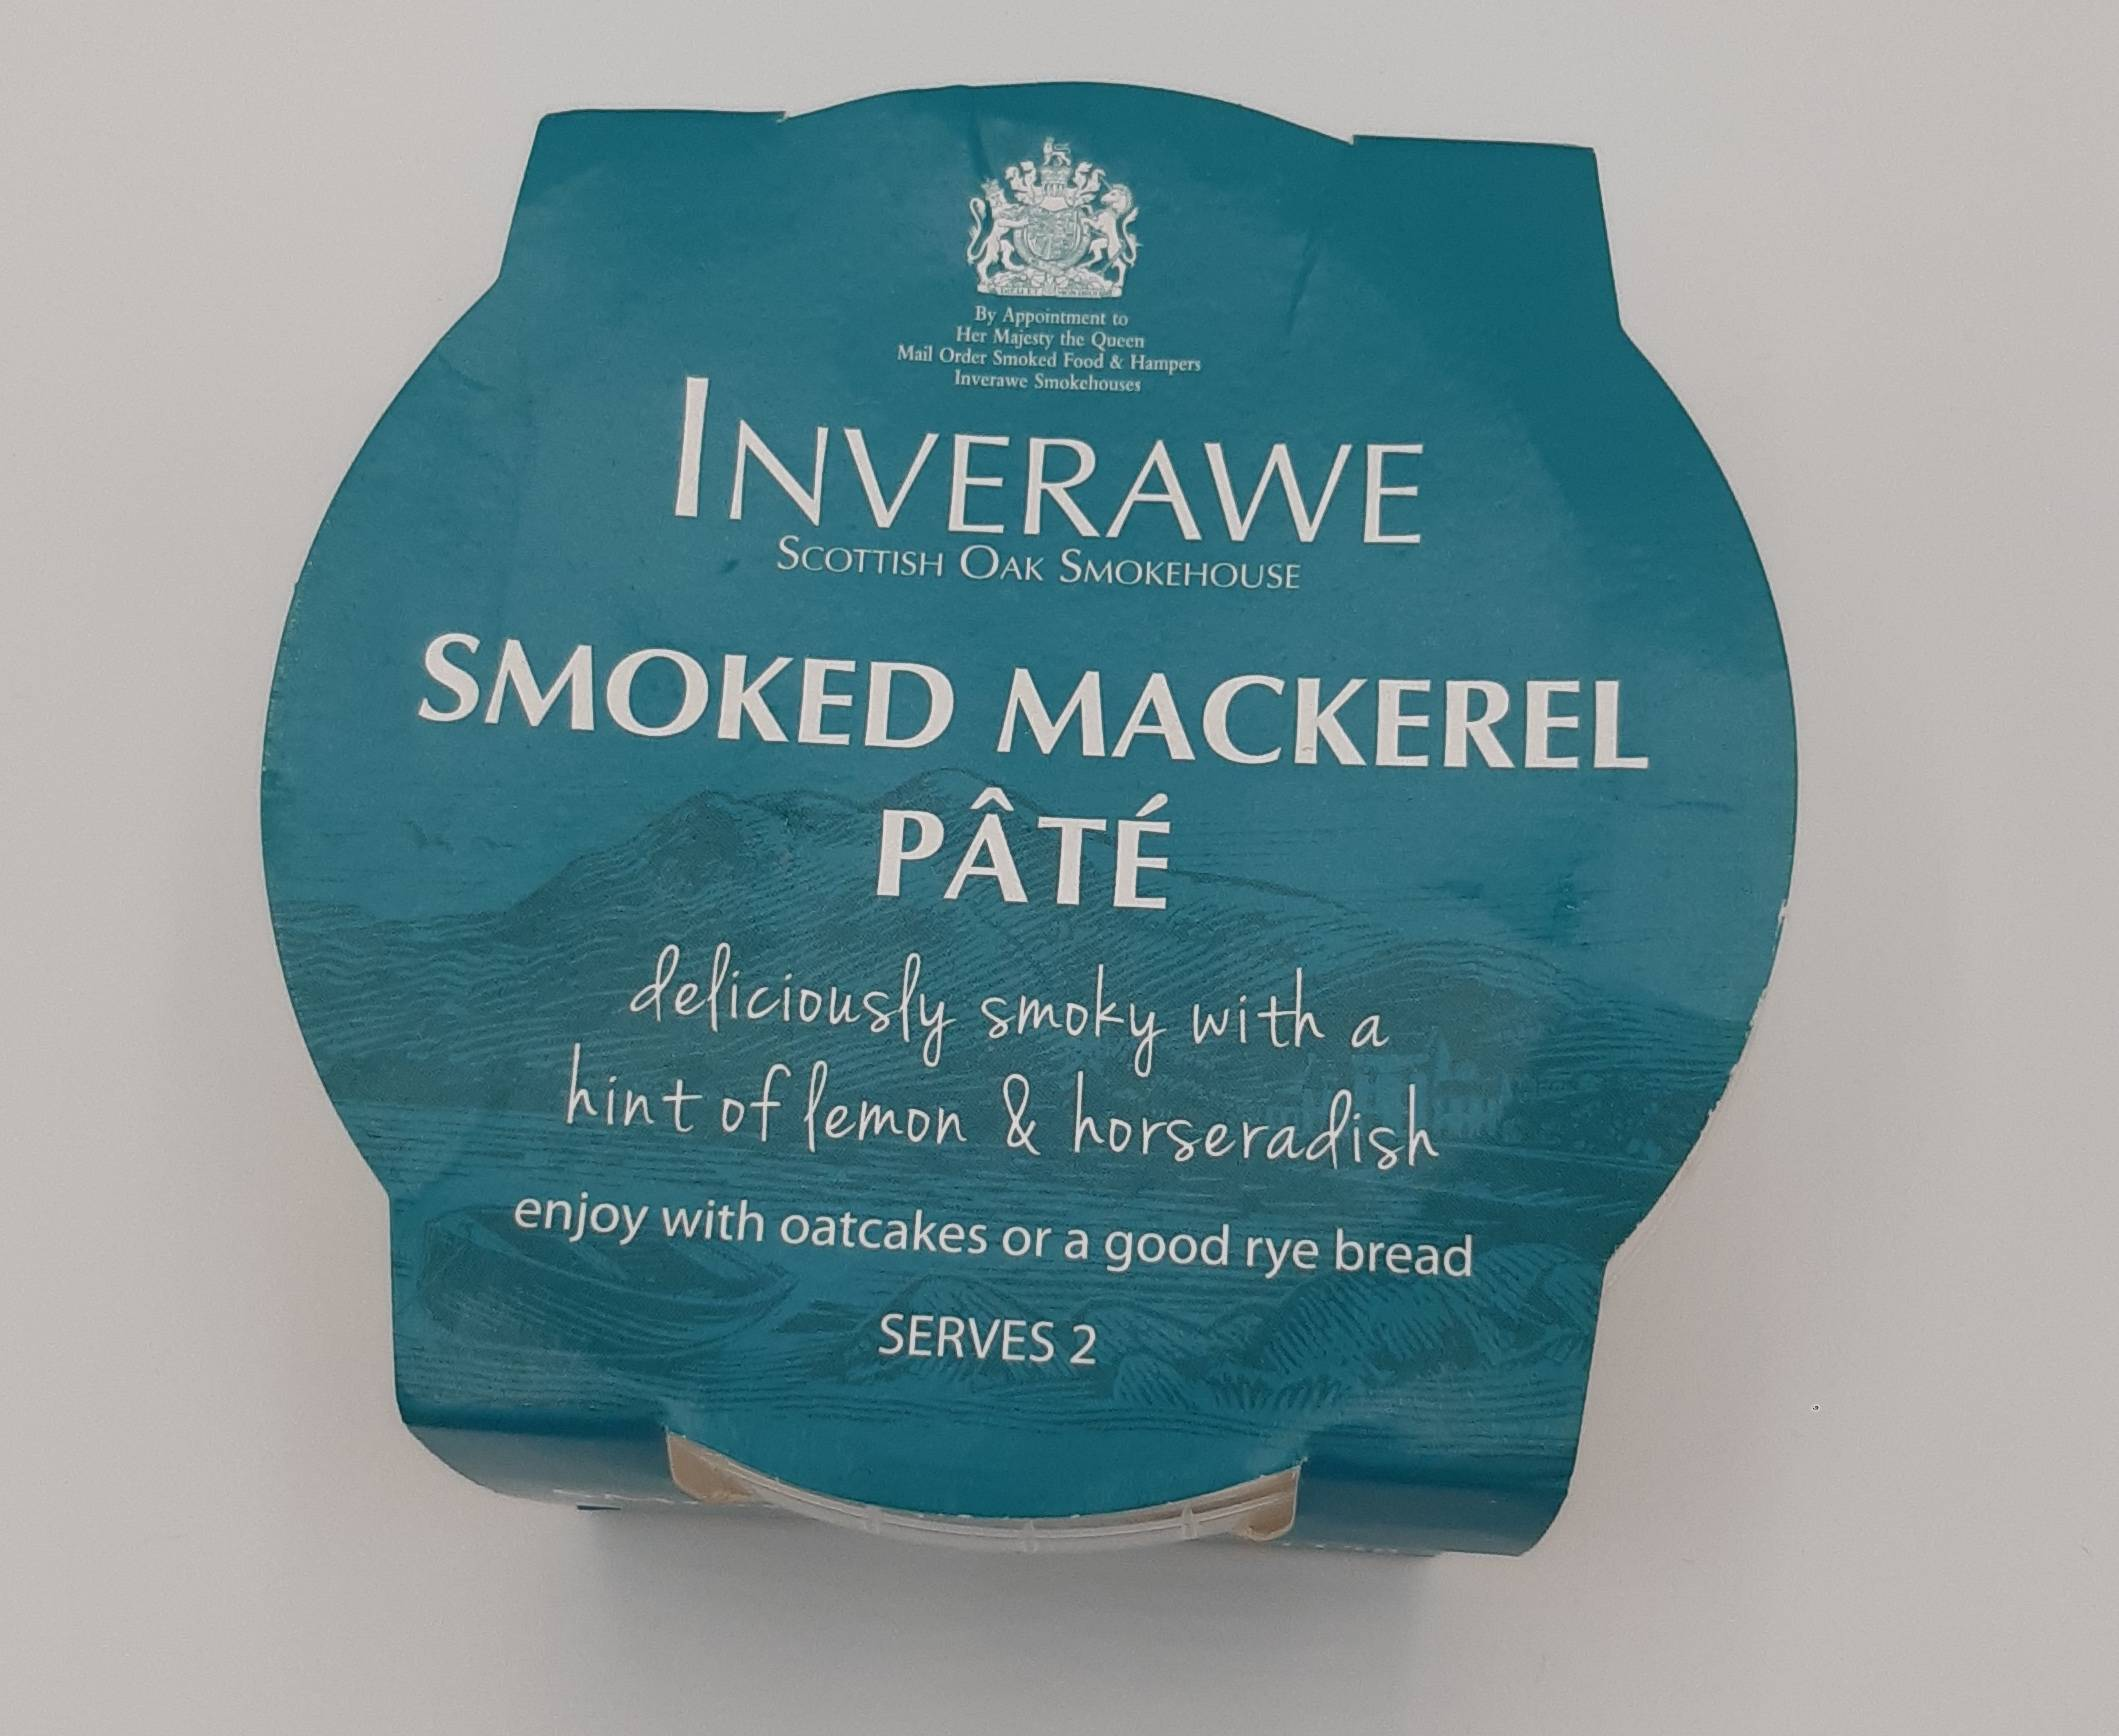 Inverawe Smoked Mackerel Pate